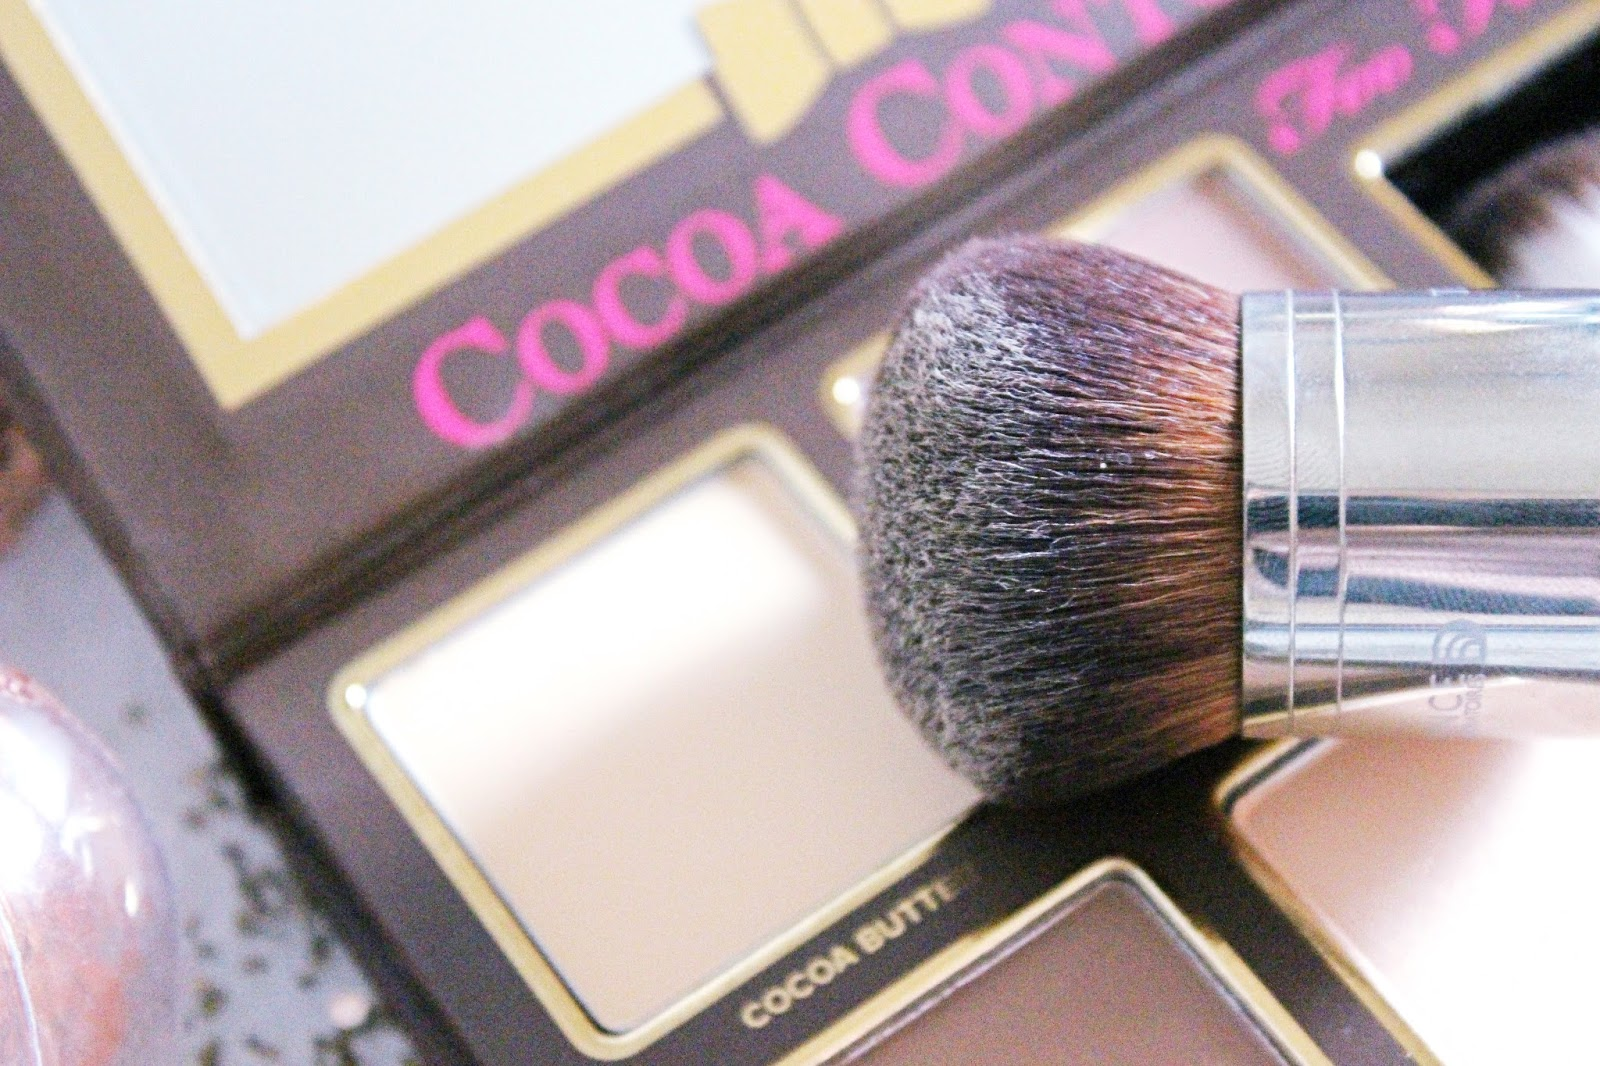 Cocoa Contour de Too Faced